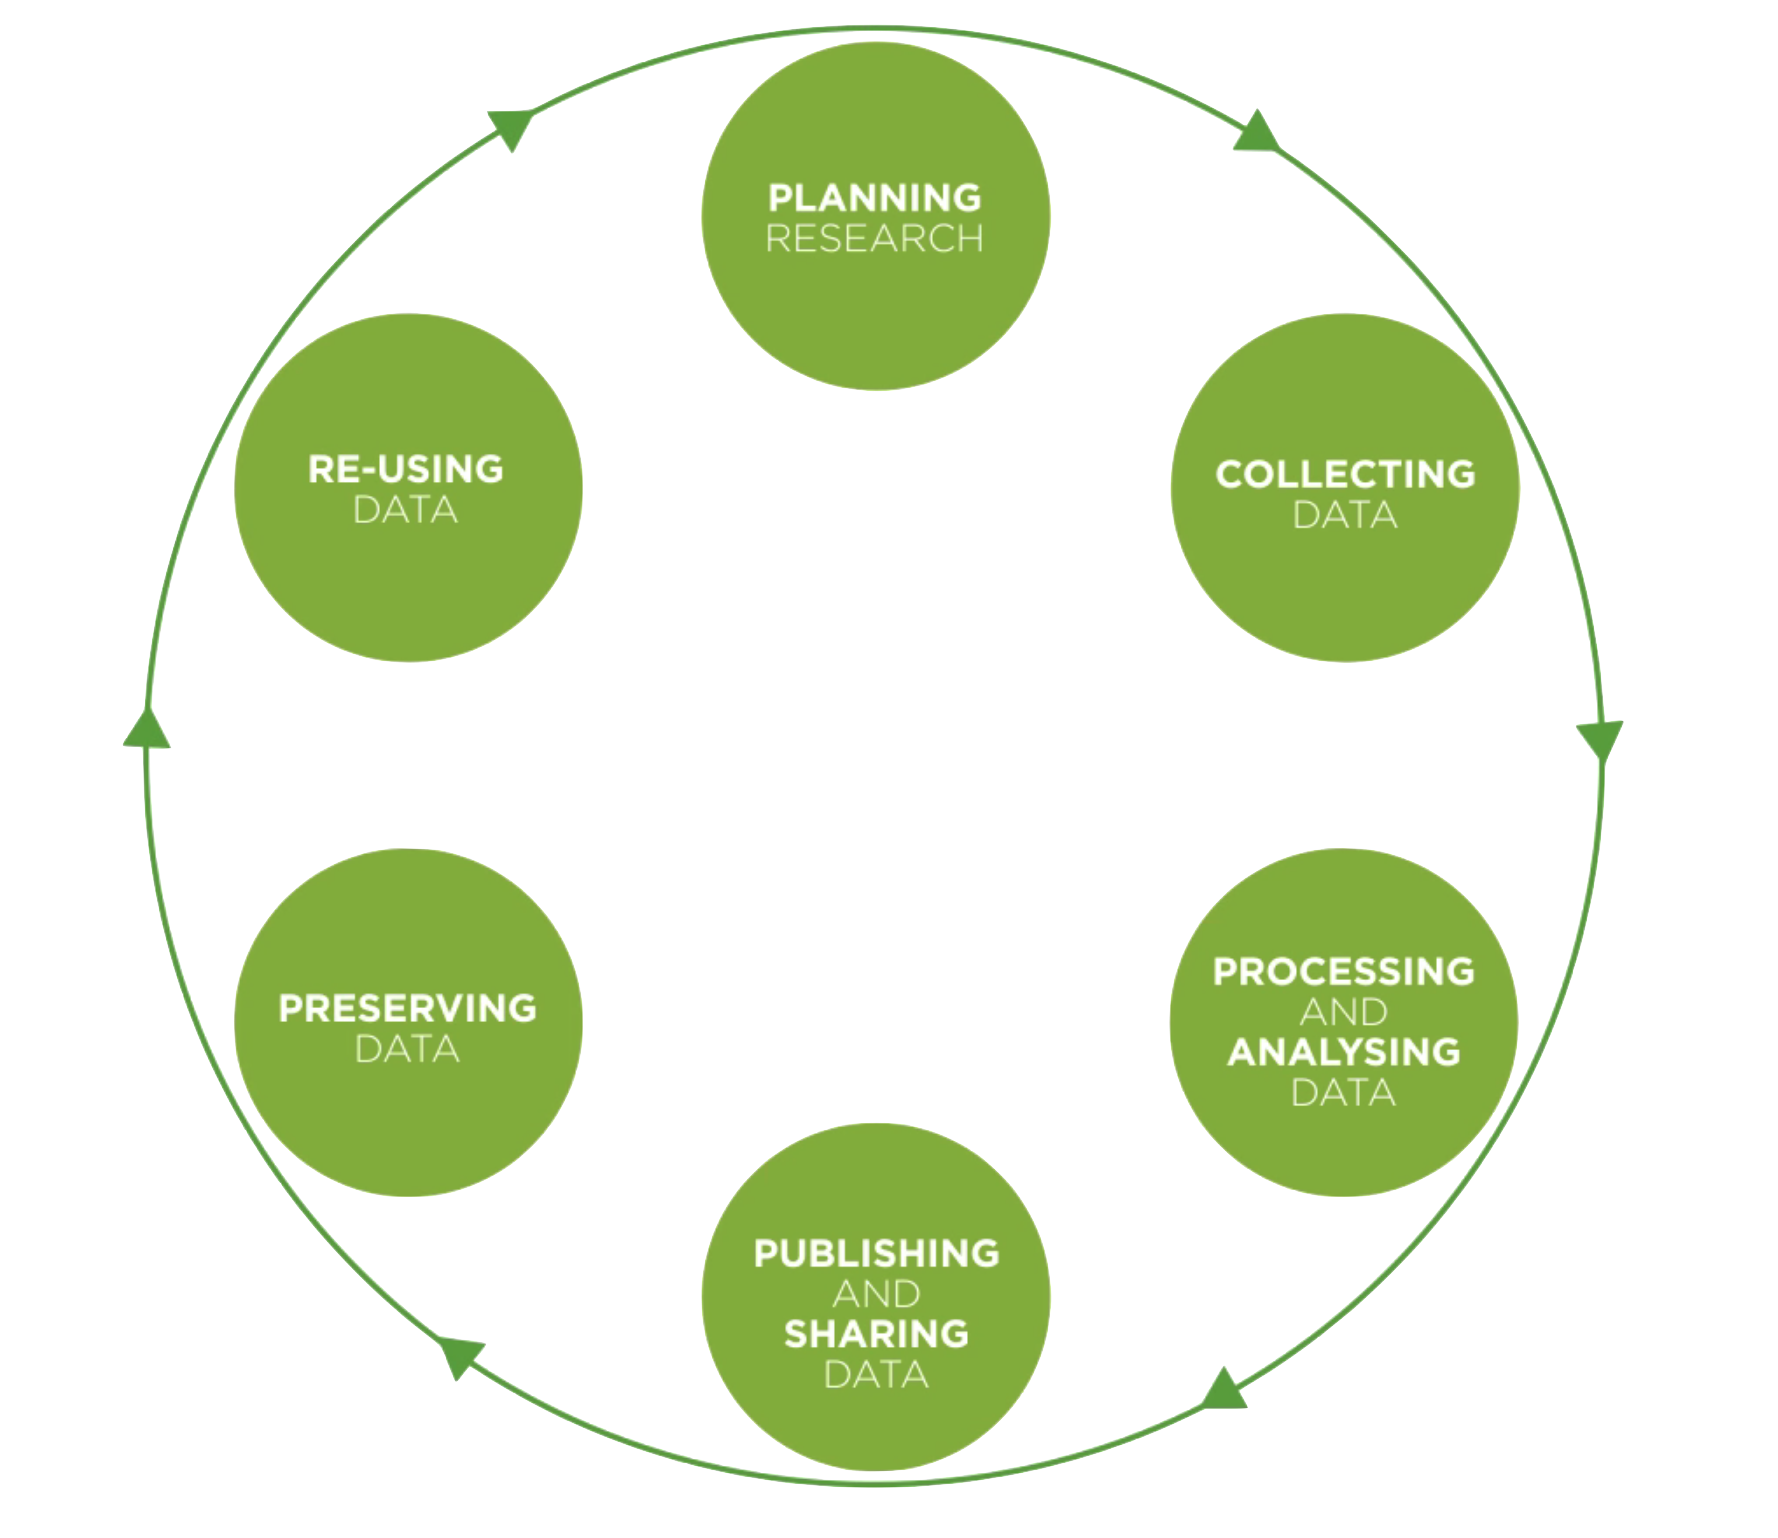 data lifecycle diagram showing cyclical progression from planning research to collecting data to processing and analysing data to publishing and sharing data to preserving data to re-using data and back to planning research